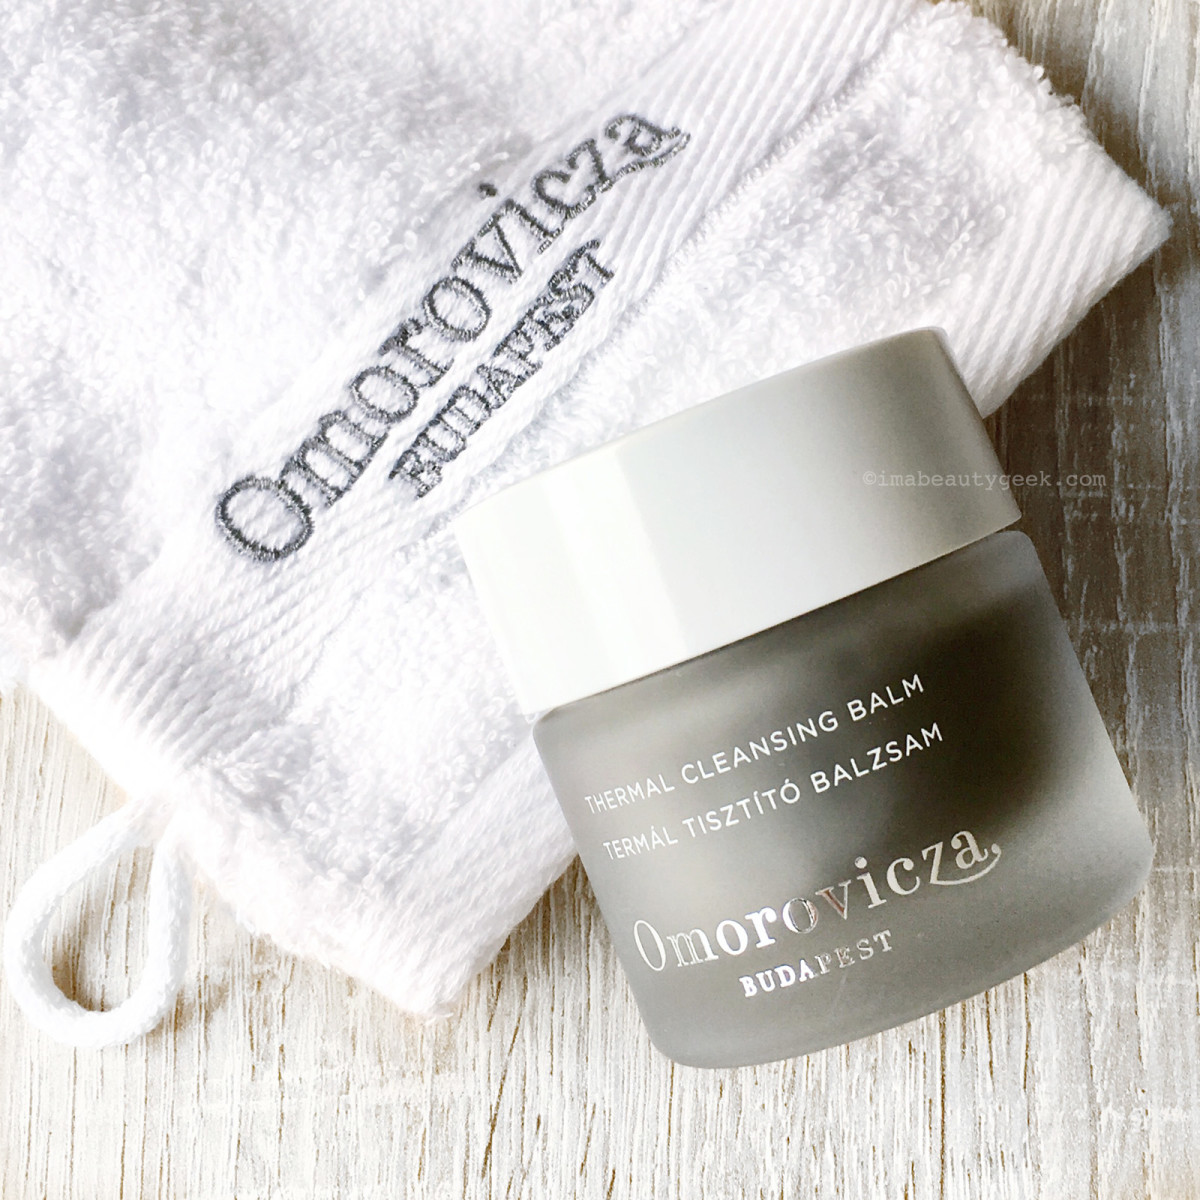 Omorovicza Thermal Cleansing Balm and full-size Cleansing Mitt